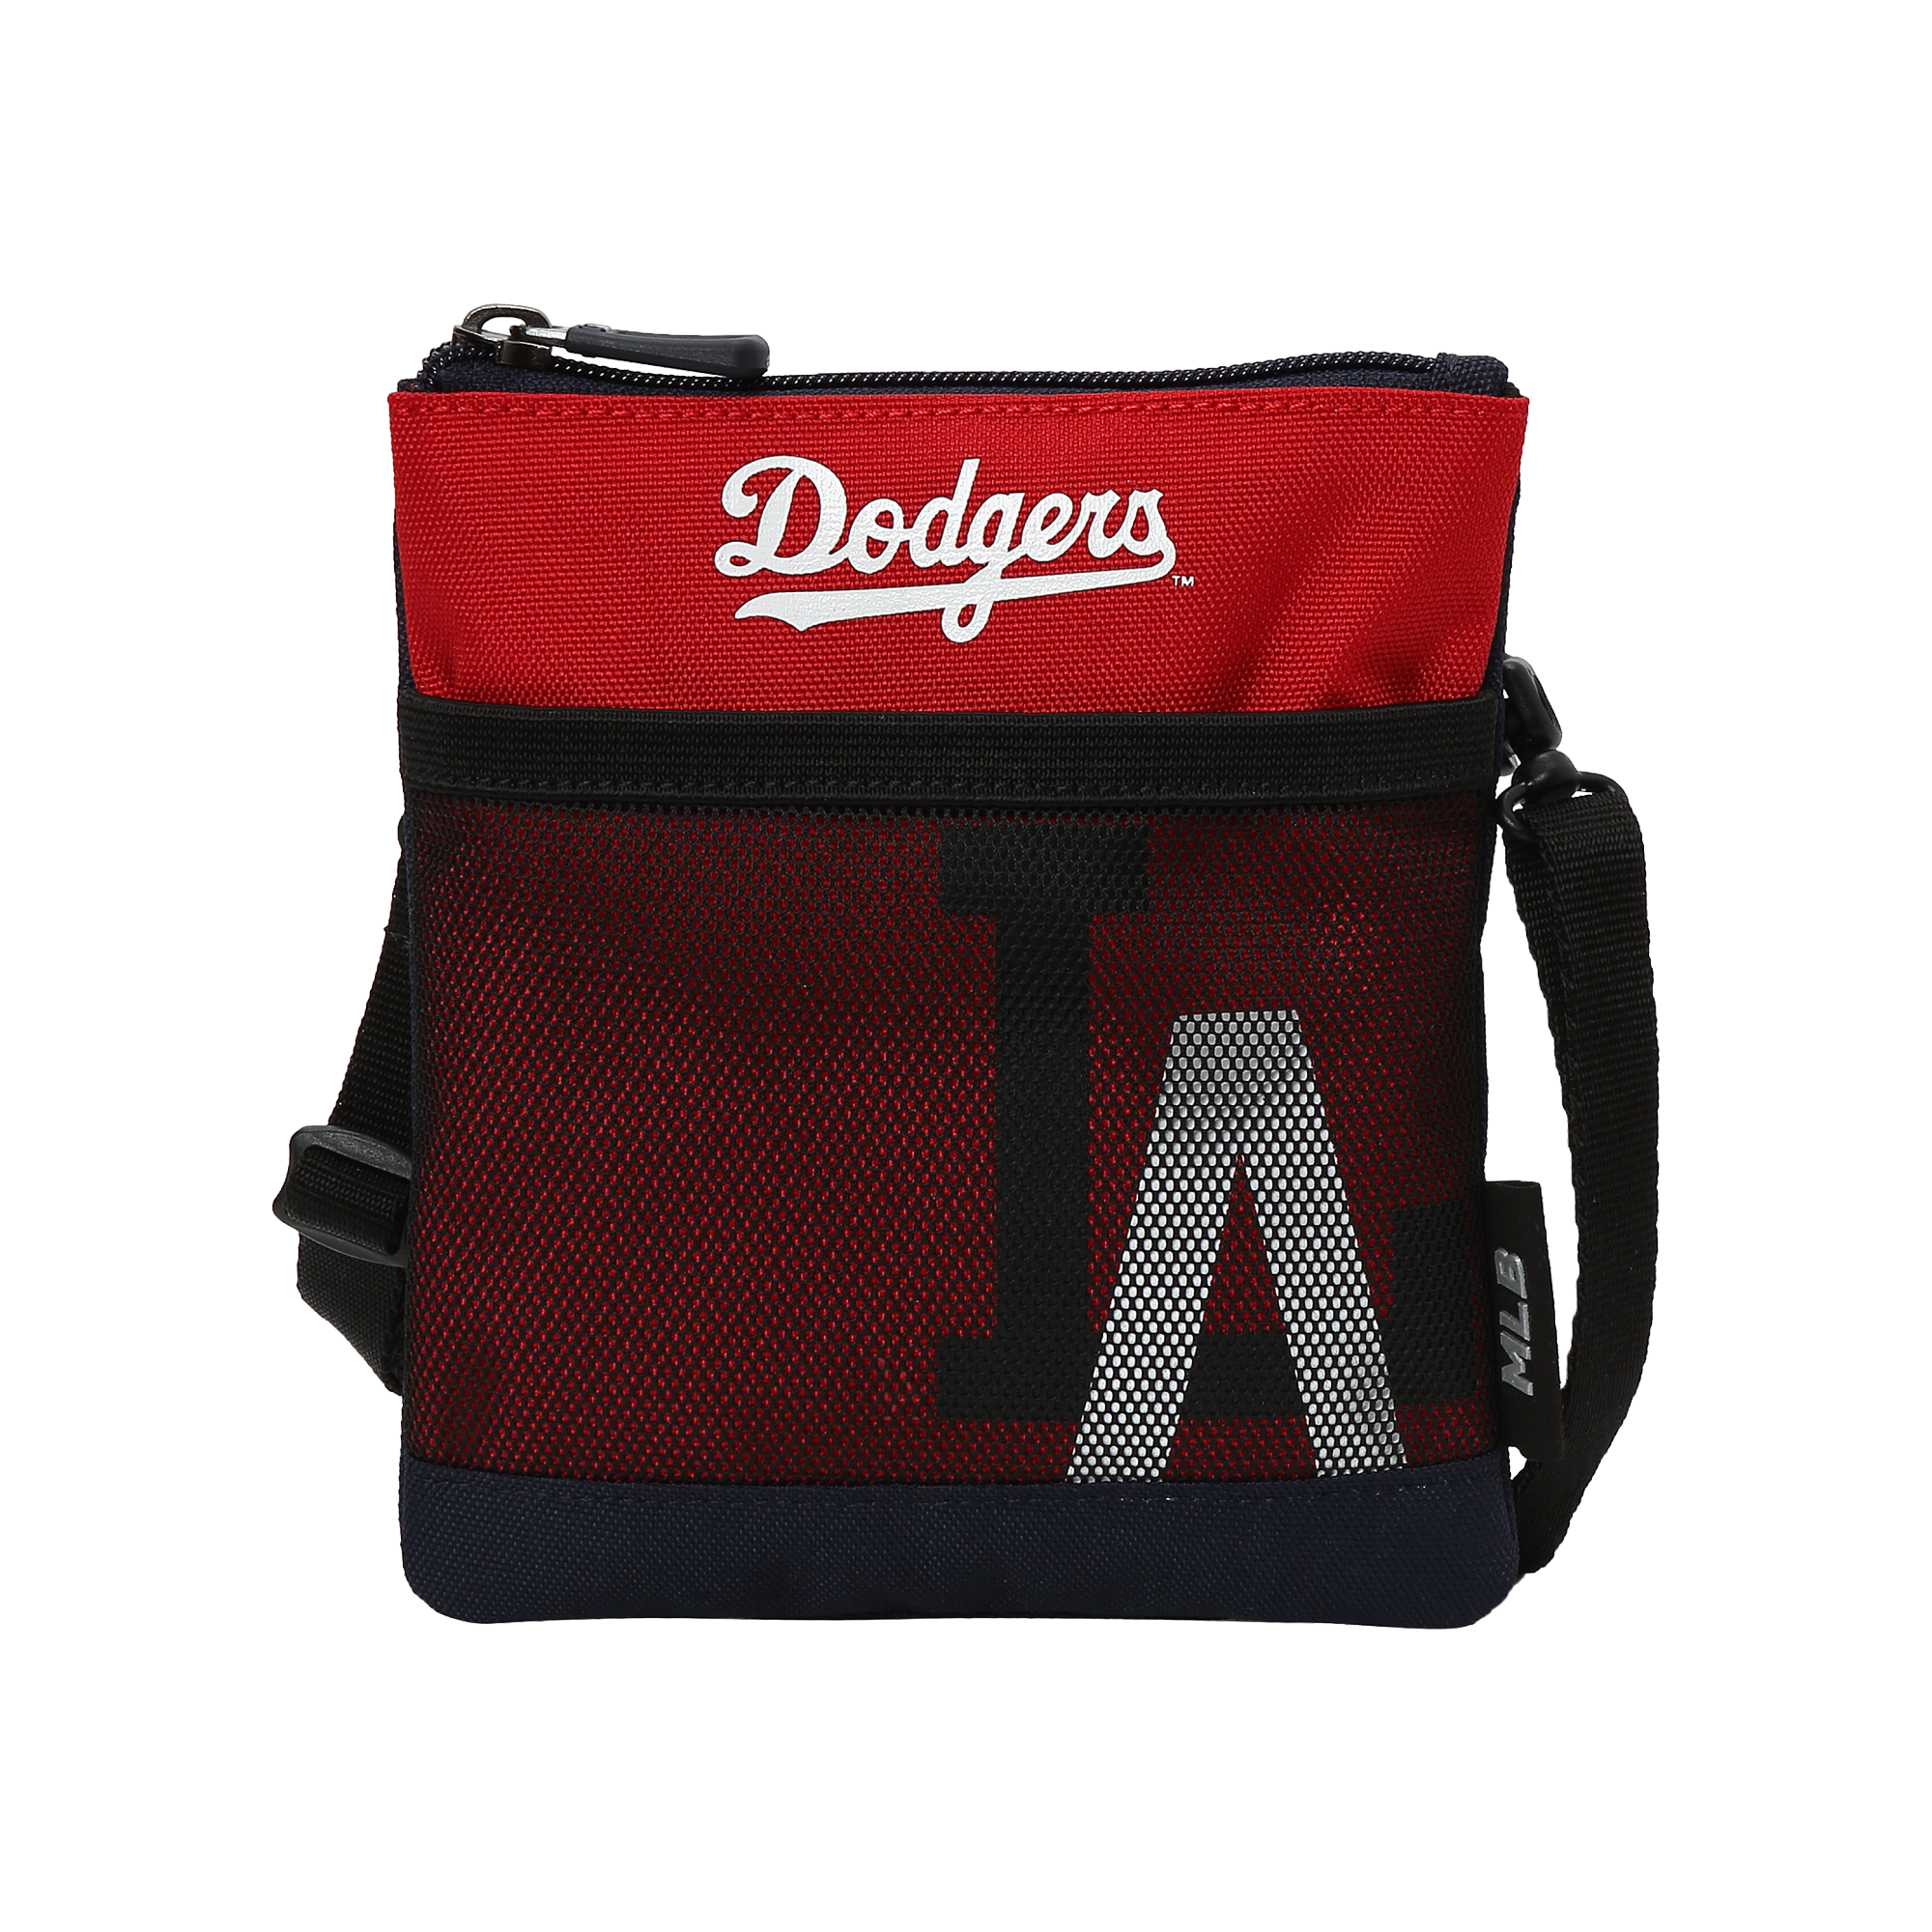 MLBKIDS SCHOOL BAG LA DODGERS MAJOR LOGO POINT MINI MESH BAG